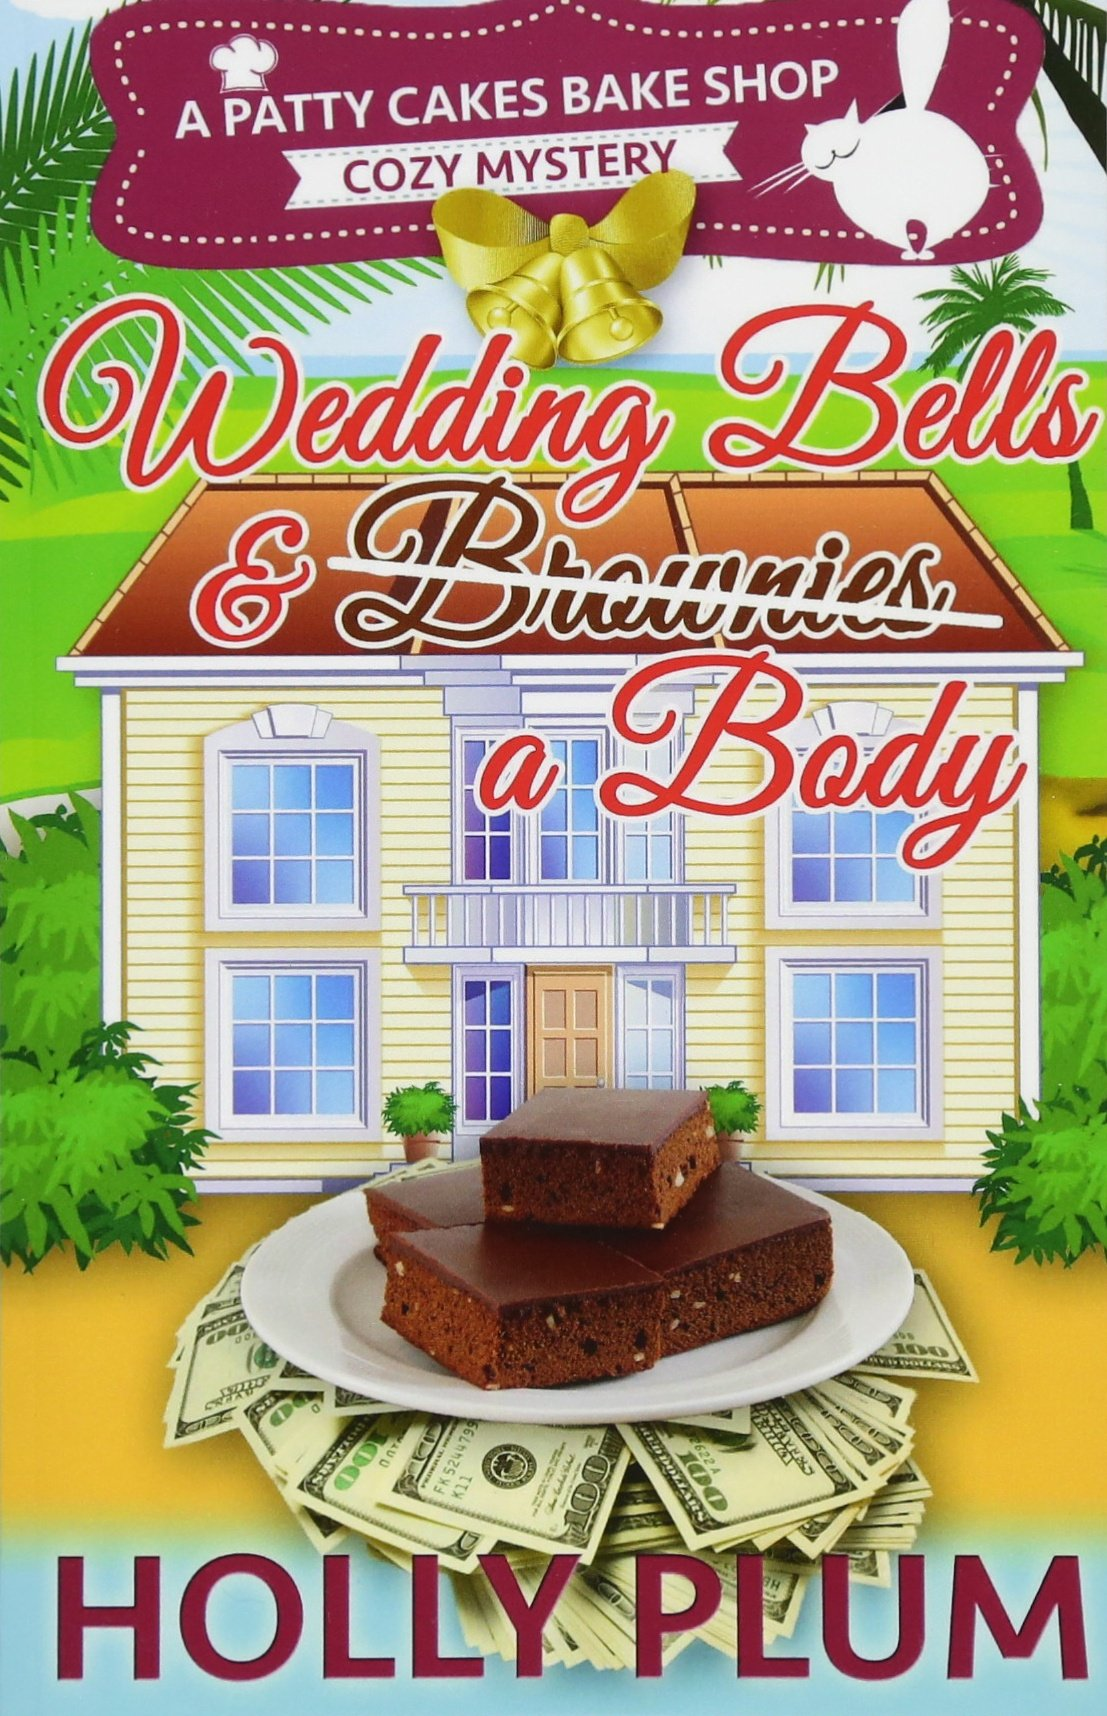 Read Online Wedding Bells and a Body (A Patty Cakes Bake Shop Cozy Mystery Series) (Volume 5) pdf